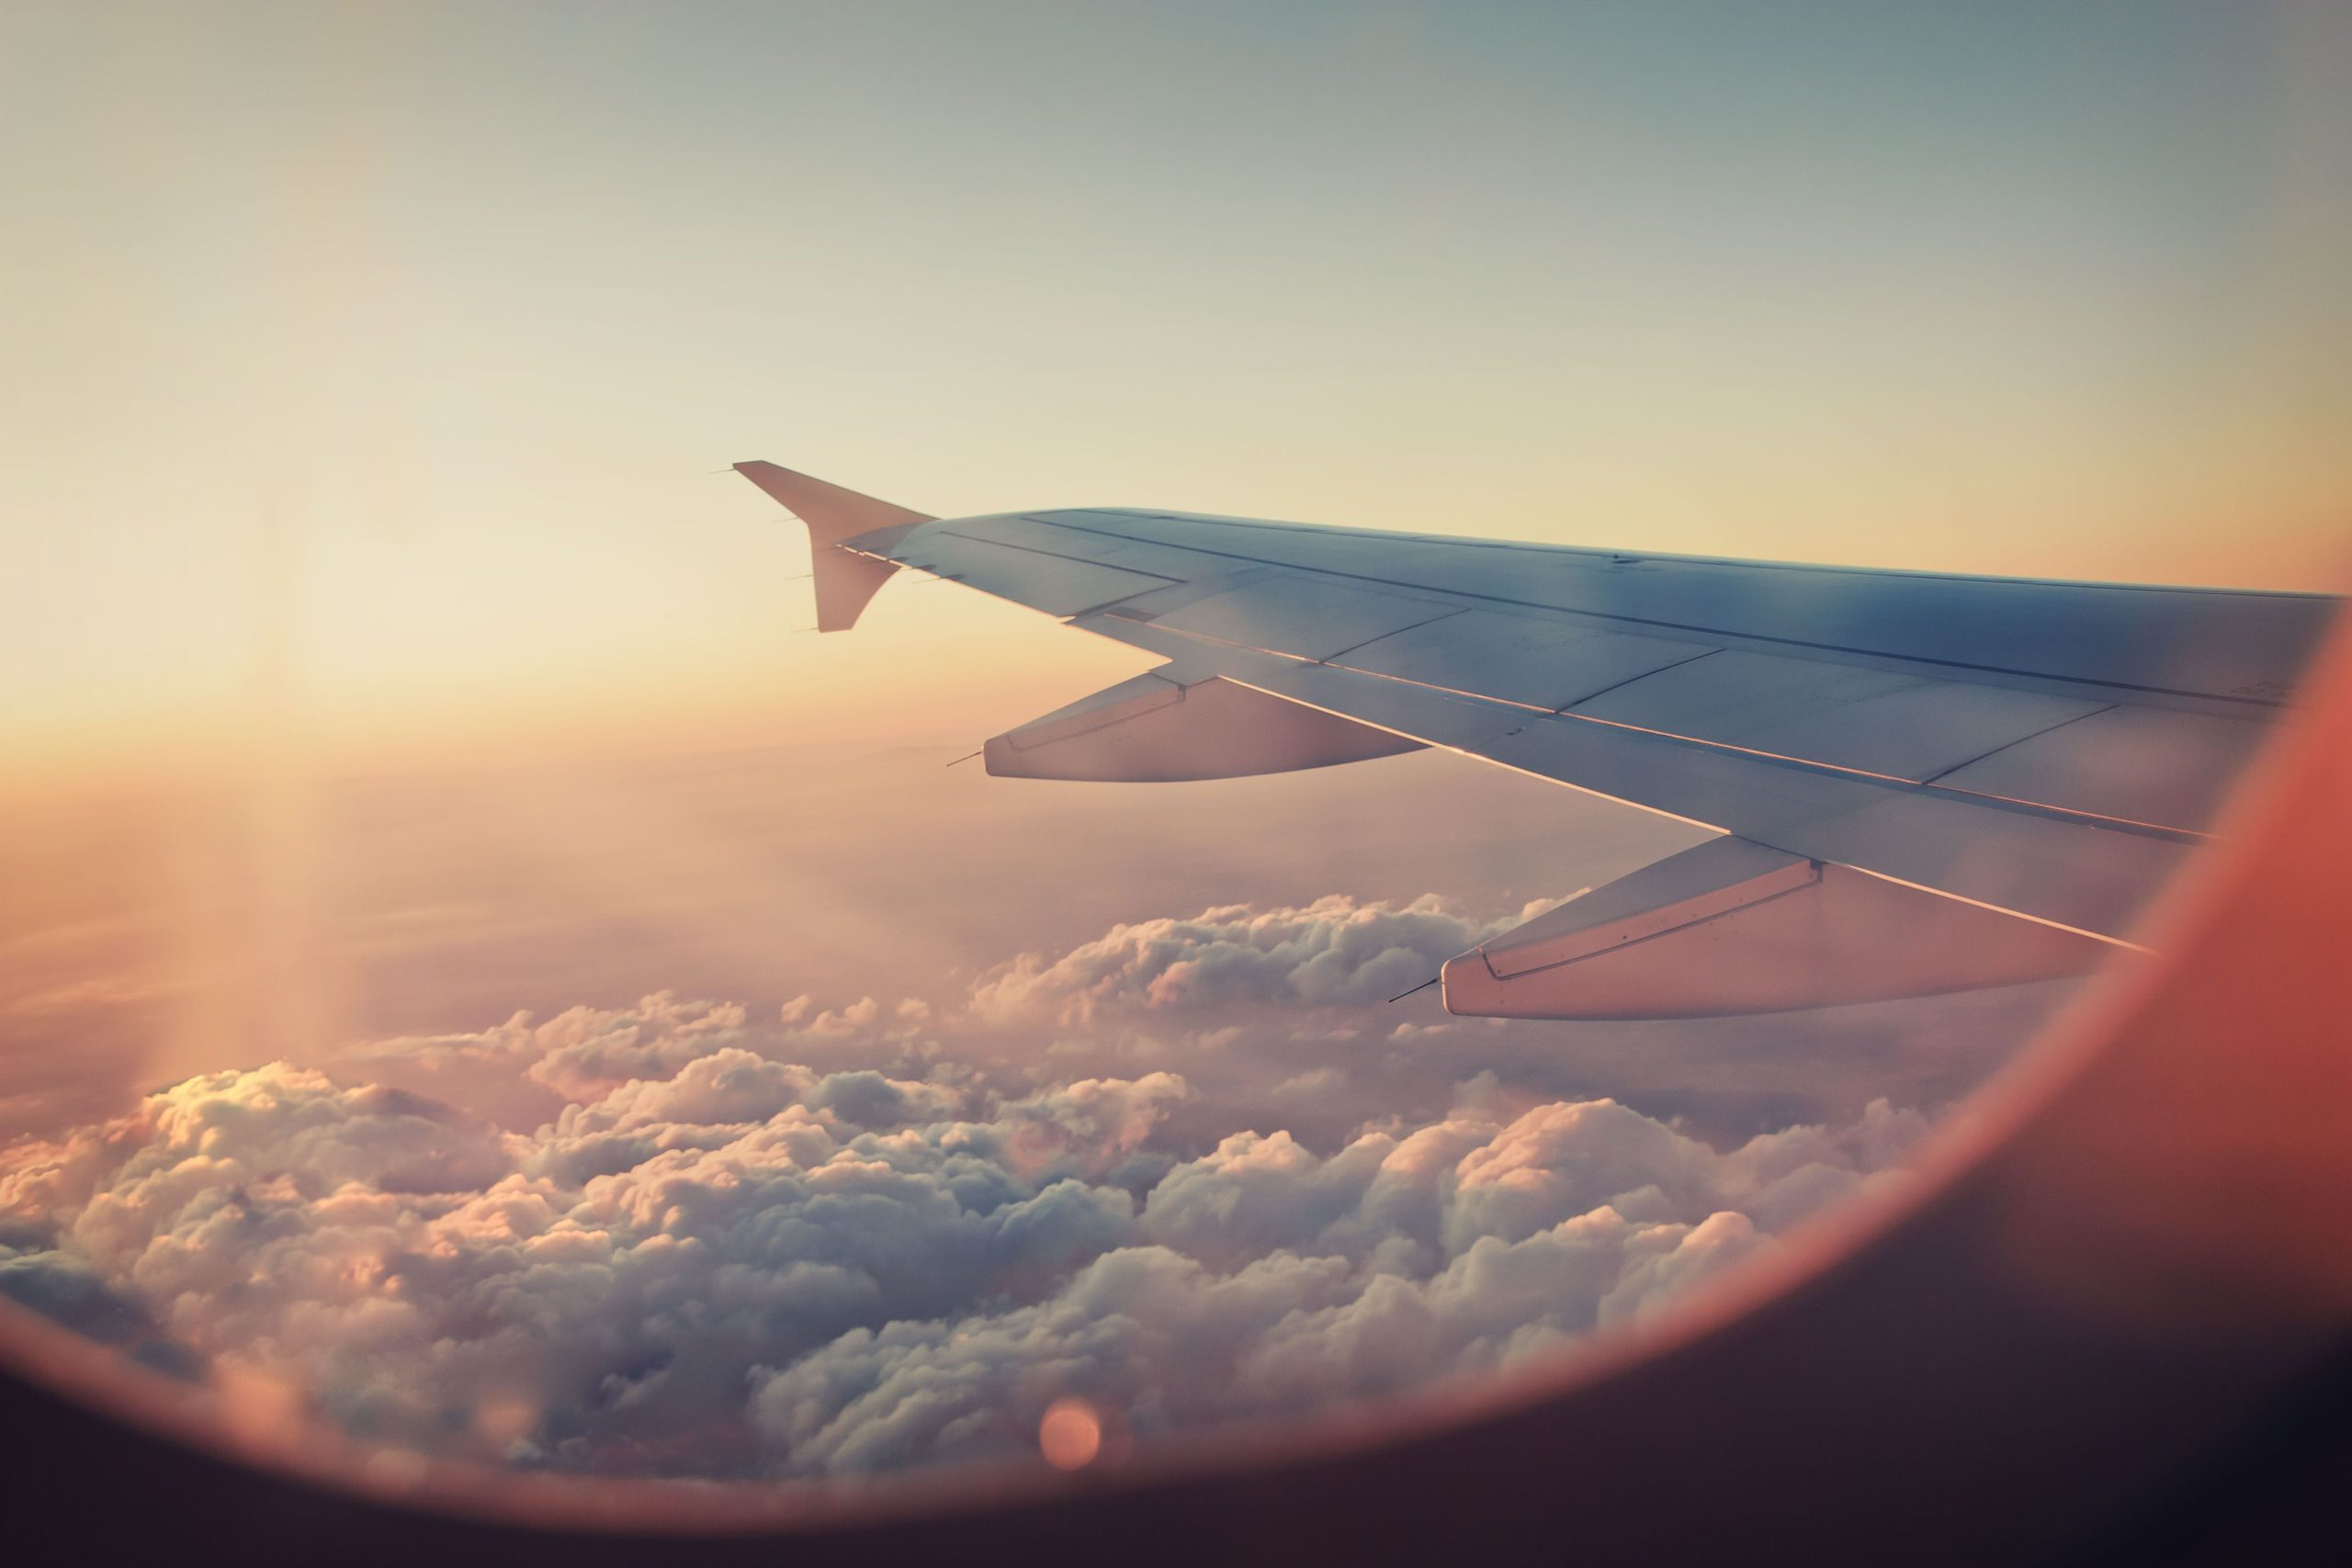 What You Should Know About Flying Right Now Amid The Coronavirus - Jaime Bonetti Zeller